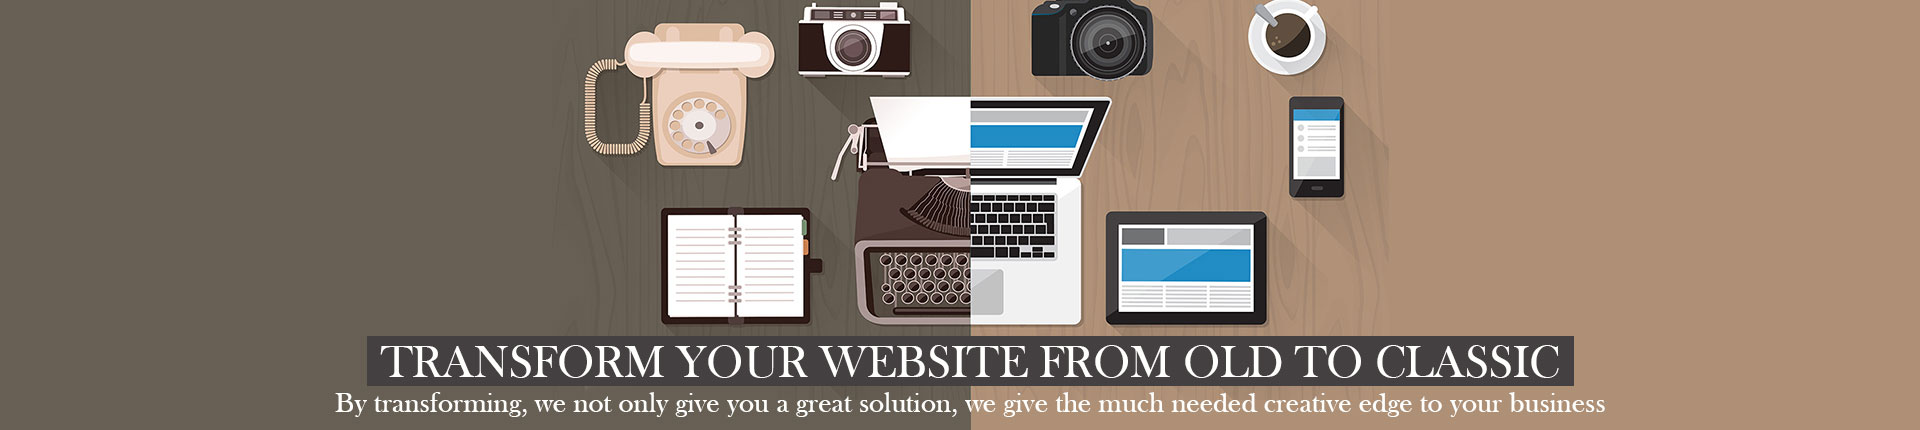 web-design-sri-lanka, best-web-design-company-sri-lanka, web-development-sri-lanka, top-web-design, creative-web-design, responsive-web-design, free-hosting web-page-design